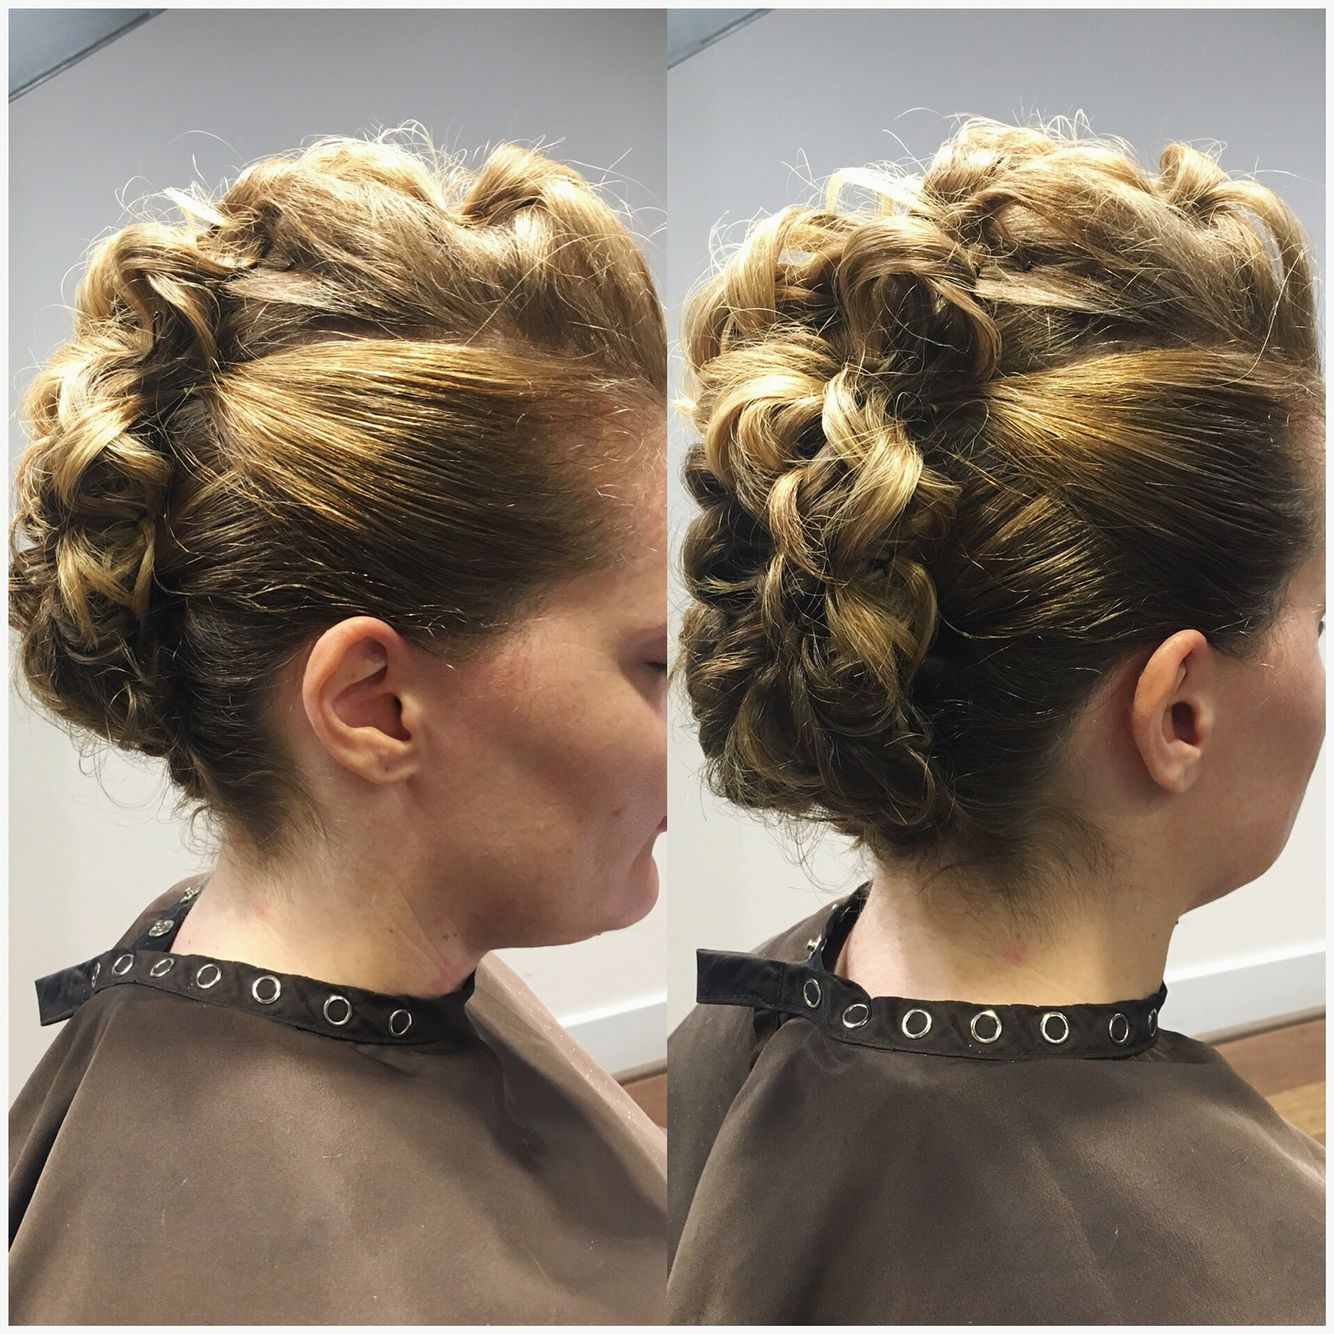 Mohawk updo style mohawk formalstyle hairstyles created by